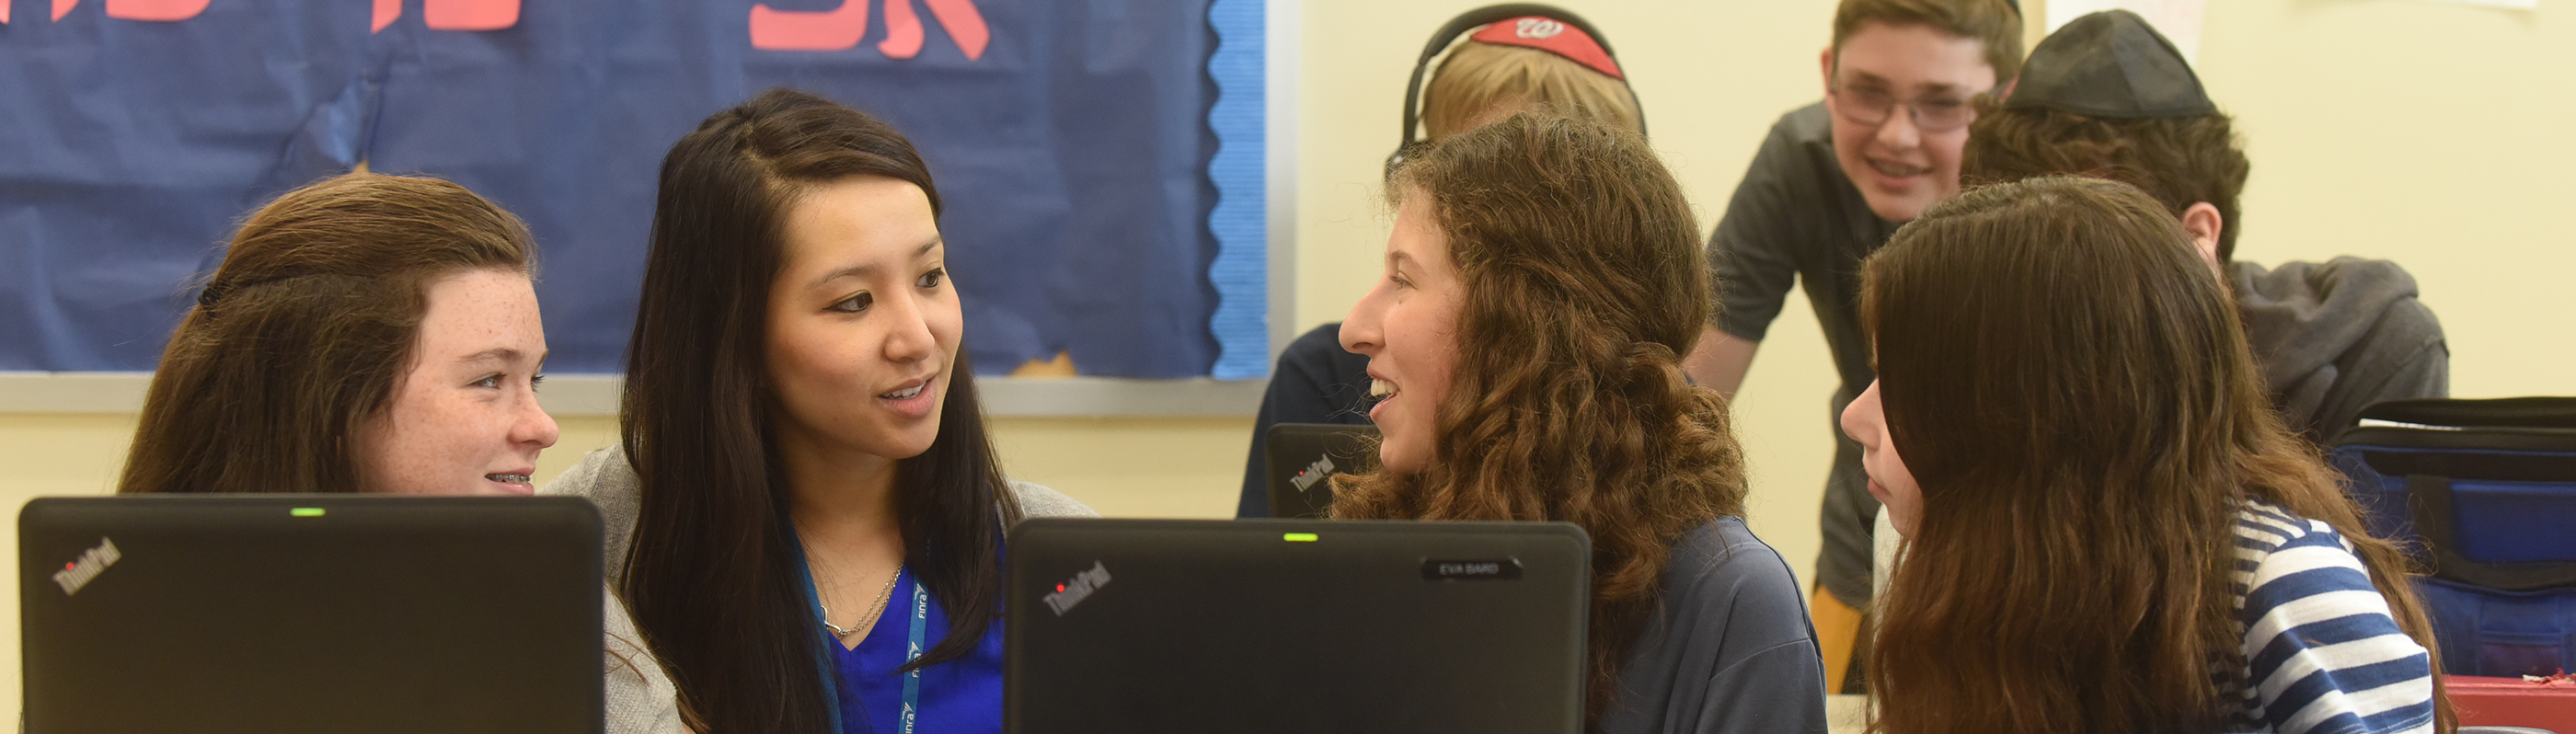 CESJDS Middle School features a challenging academic program in a supportive environment